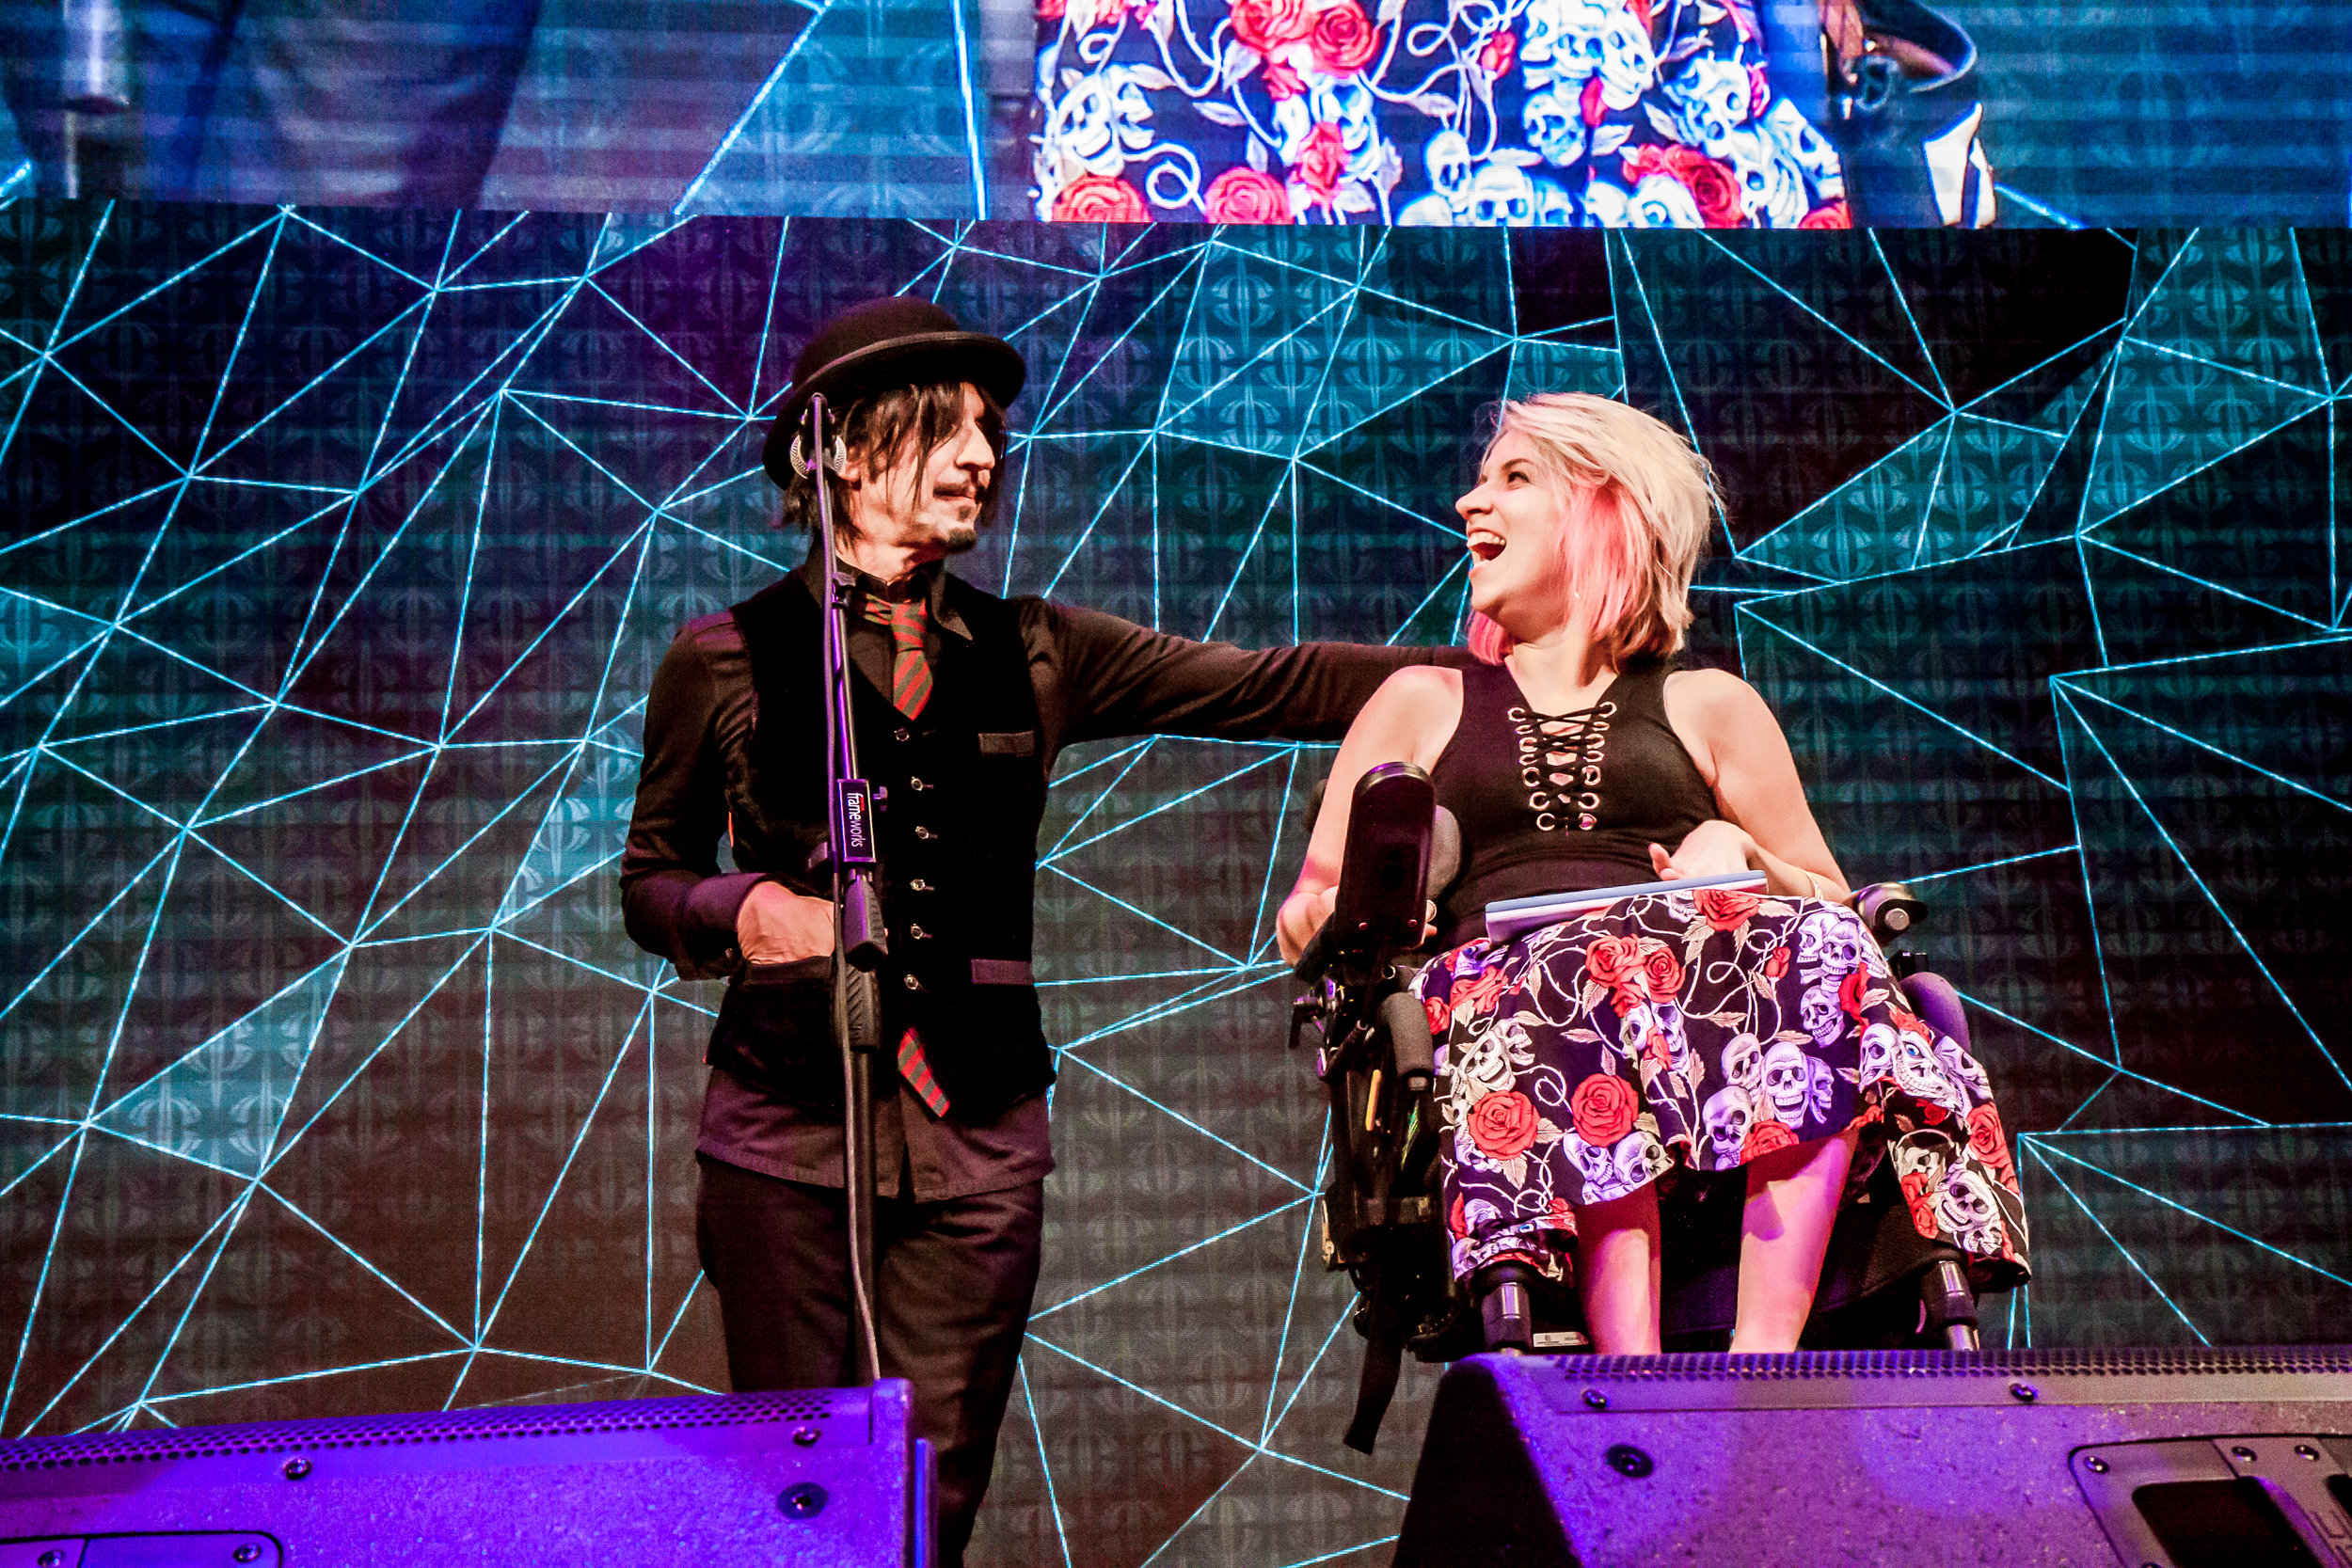 Steve Balbi with Jessica Irwin. Image by Russell Cherry